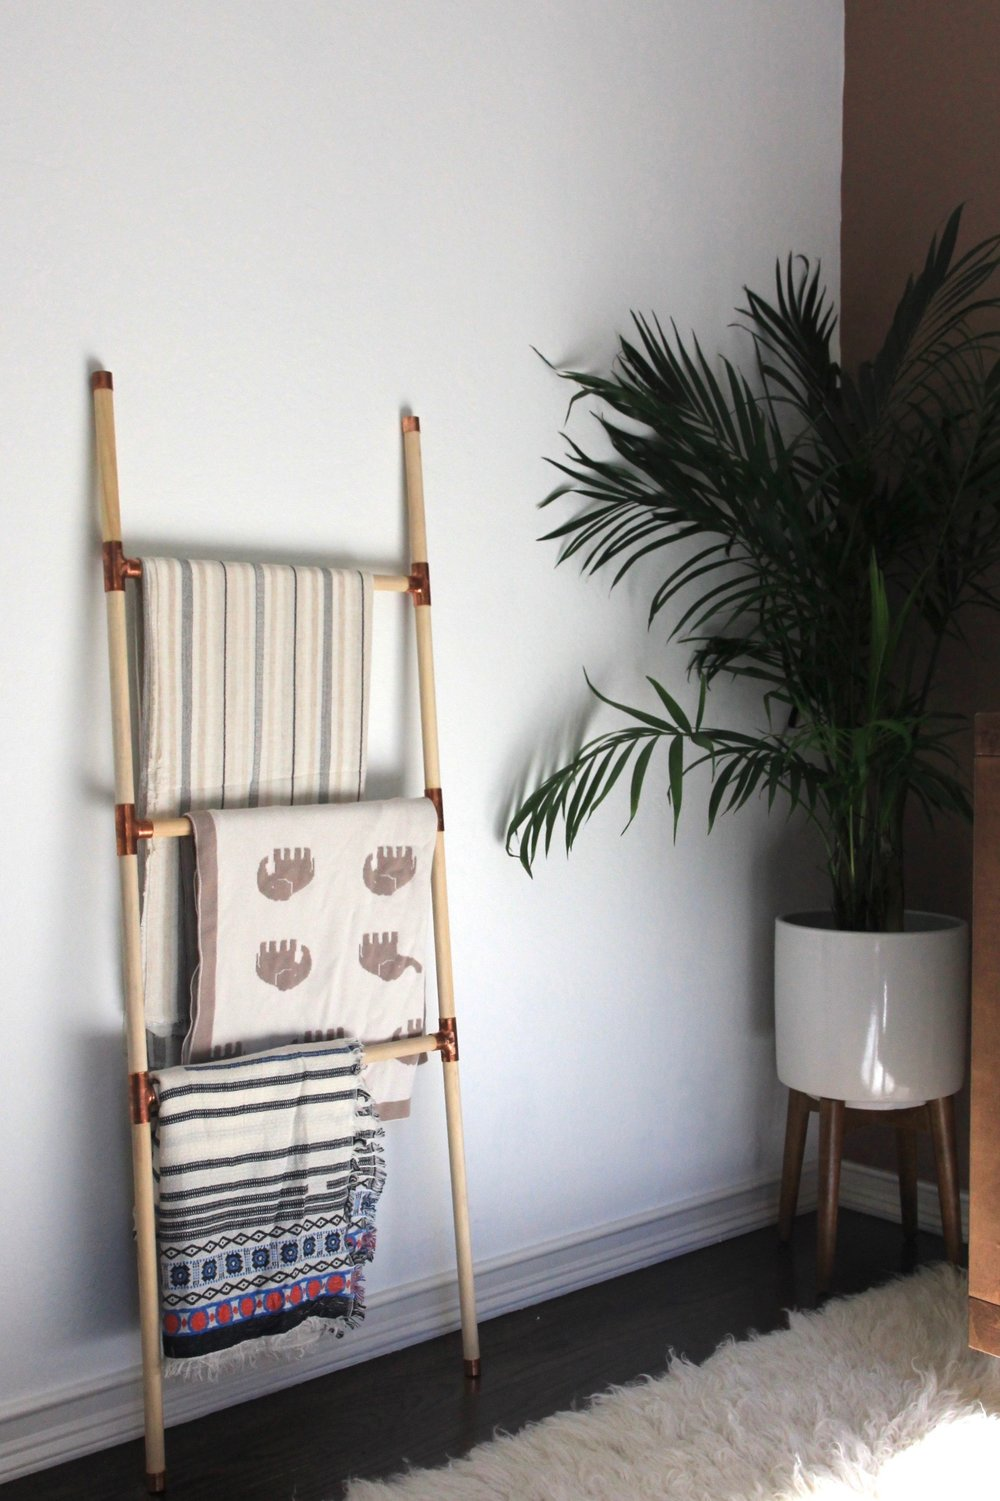 DIY blanket ladder, west elm planter